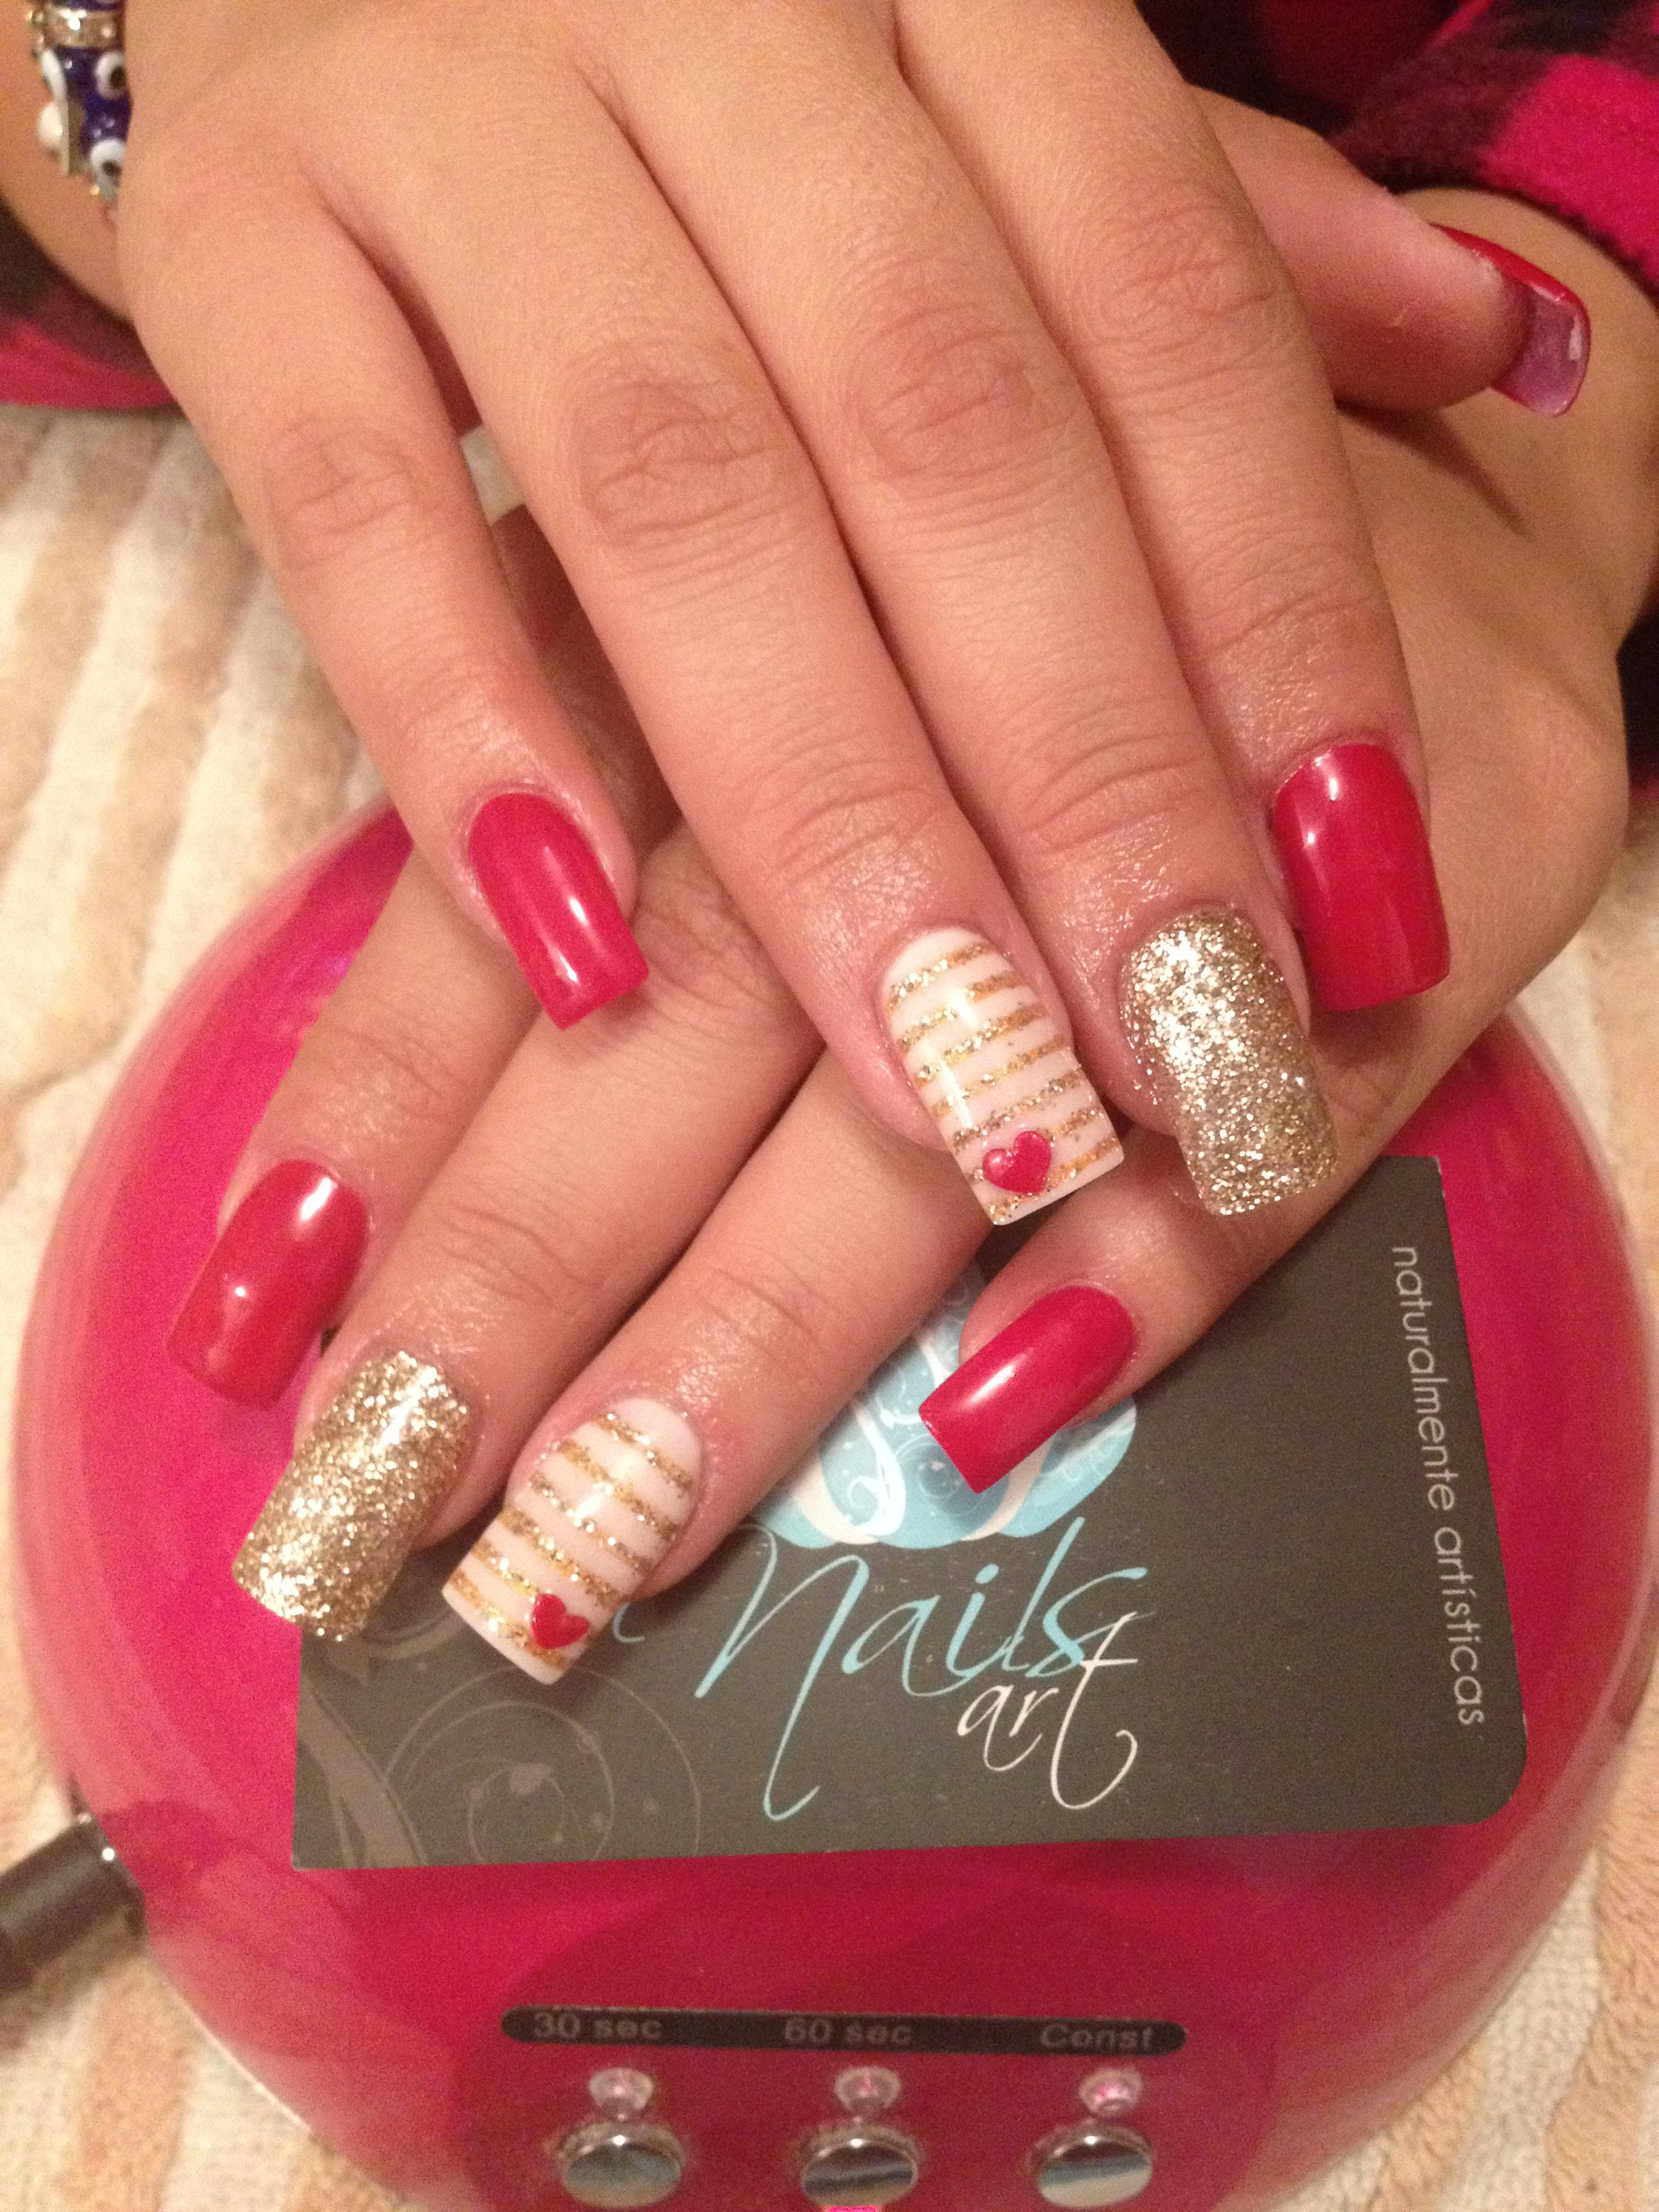 Nails art acrylic red also alana pliml alanagoalie on pinterest rh